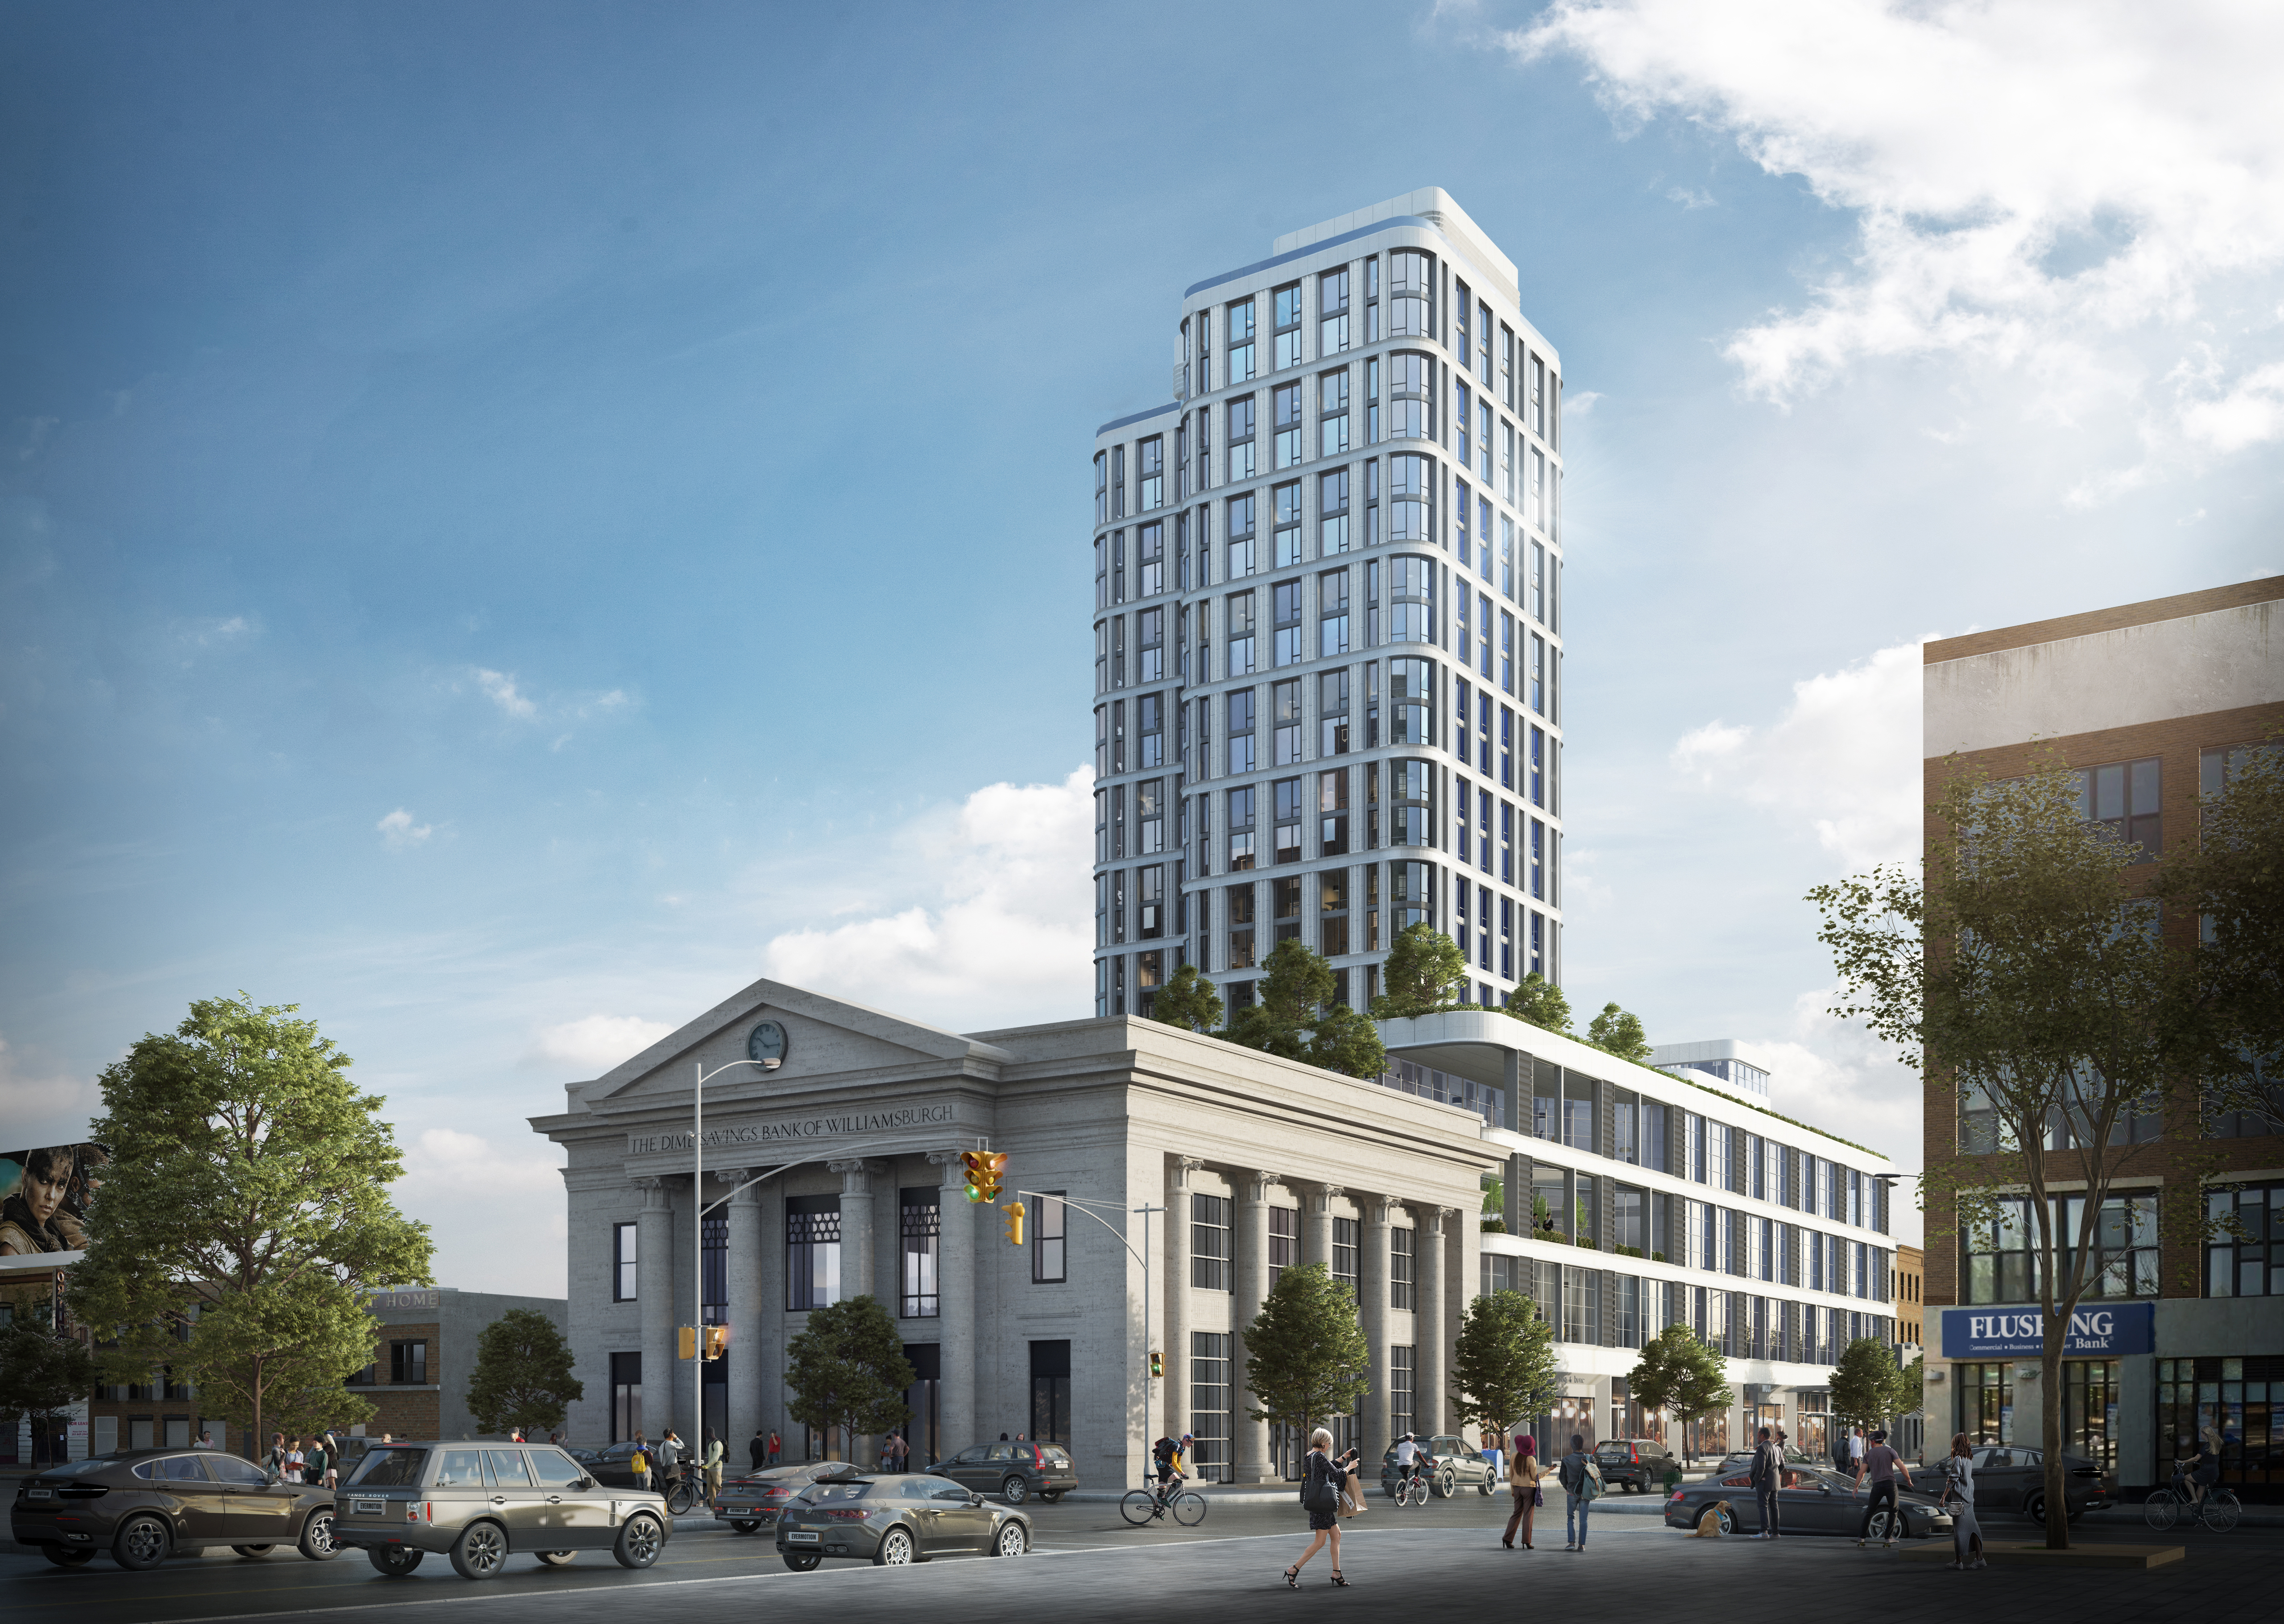 The planned 22-story Dime next to the old Dime Savings Bank of Williamsburgh. Rendering: Fogarty Finger Architecture